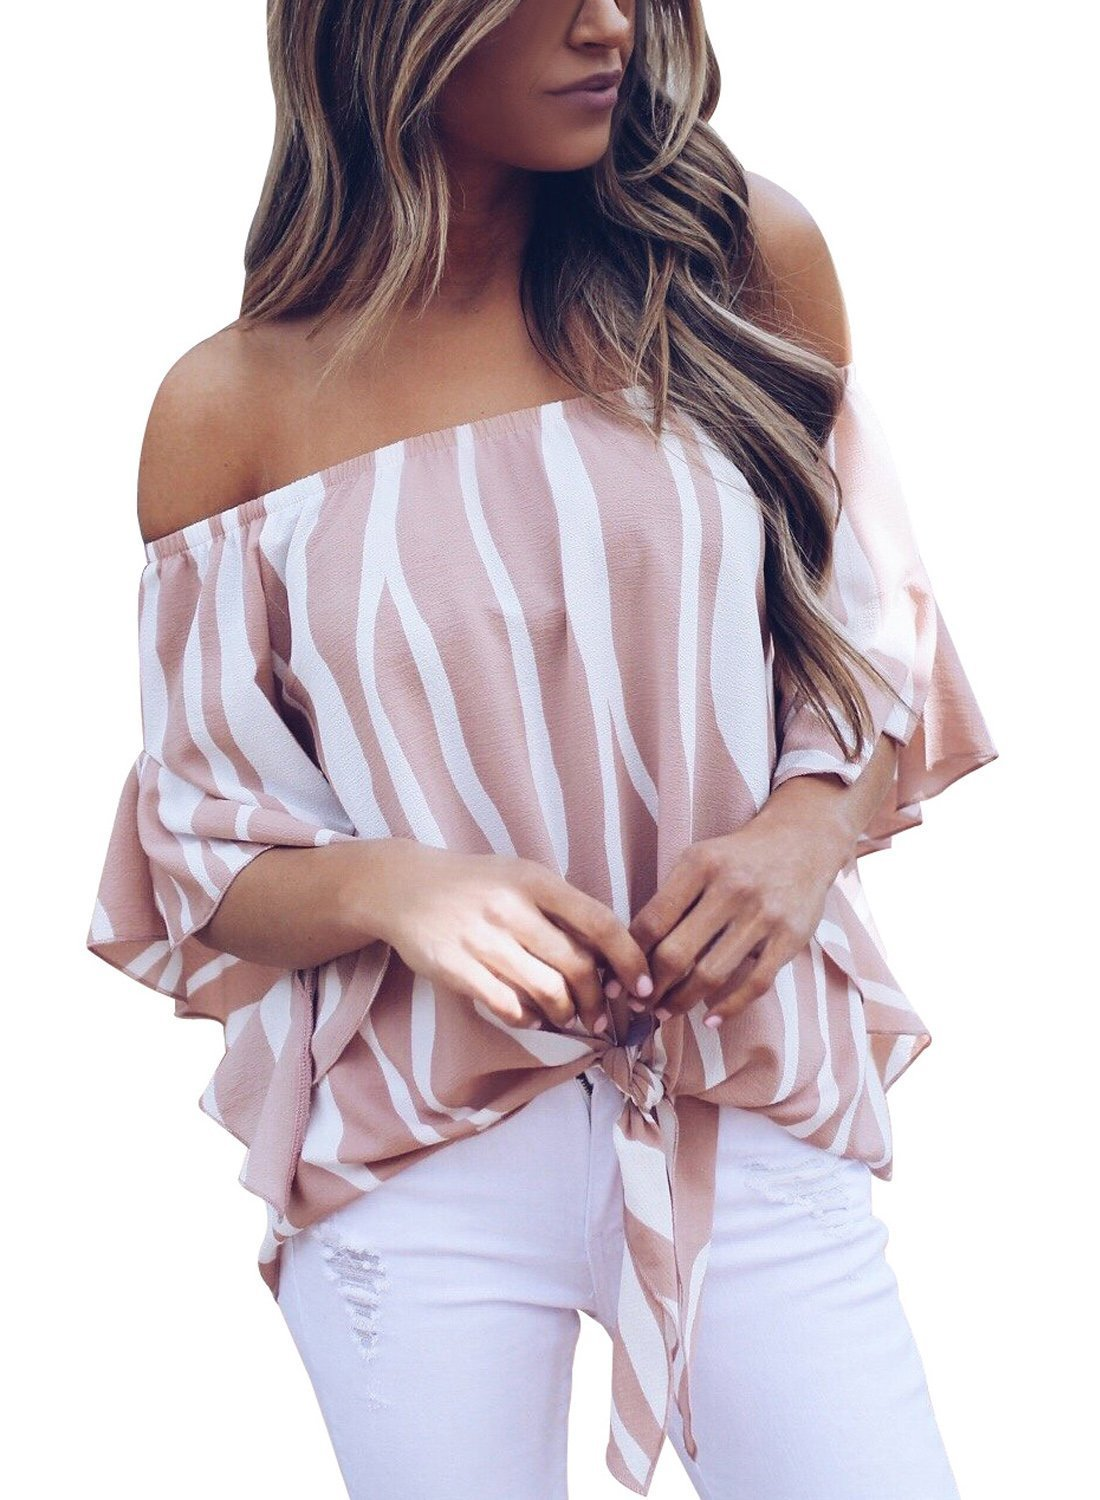 Fantastic Zone Womens Off The Shoulder Flare Sleeve T-Shirt Tie Knot Blouses and Tops Small Striped Pink